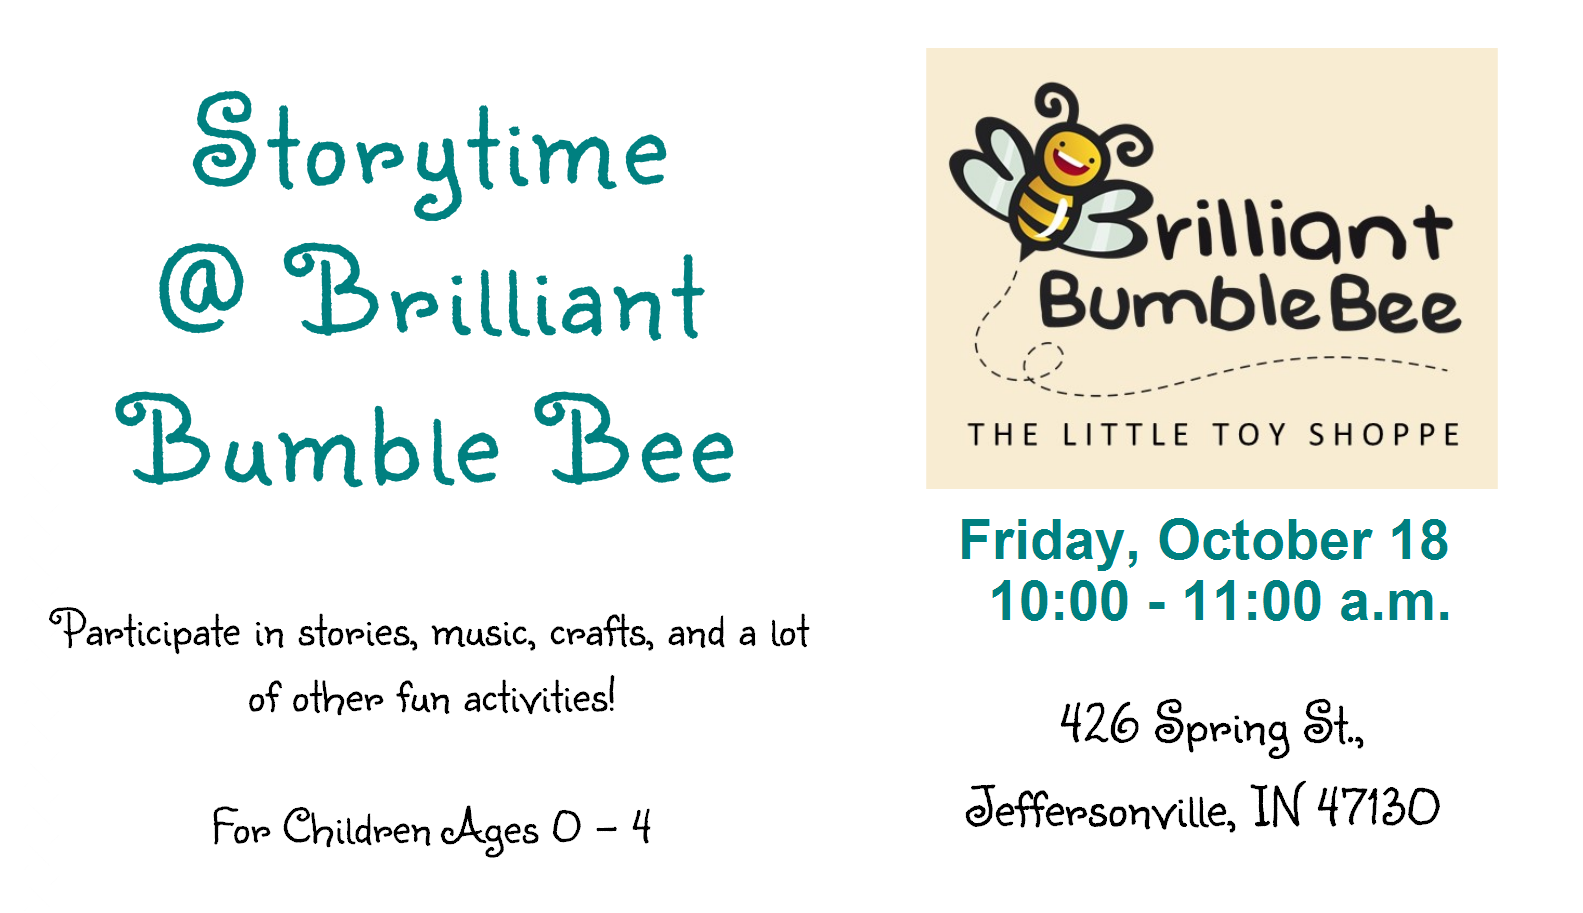 Storytime at Brilliant Bumble Bee